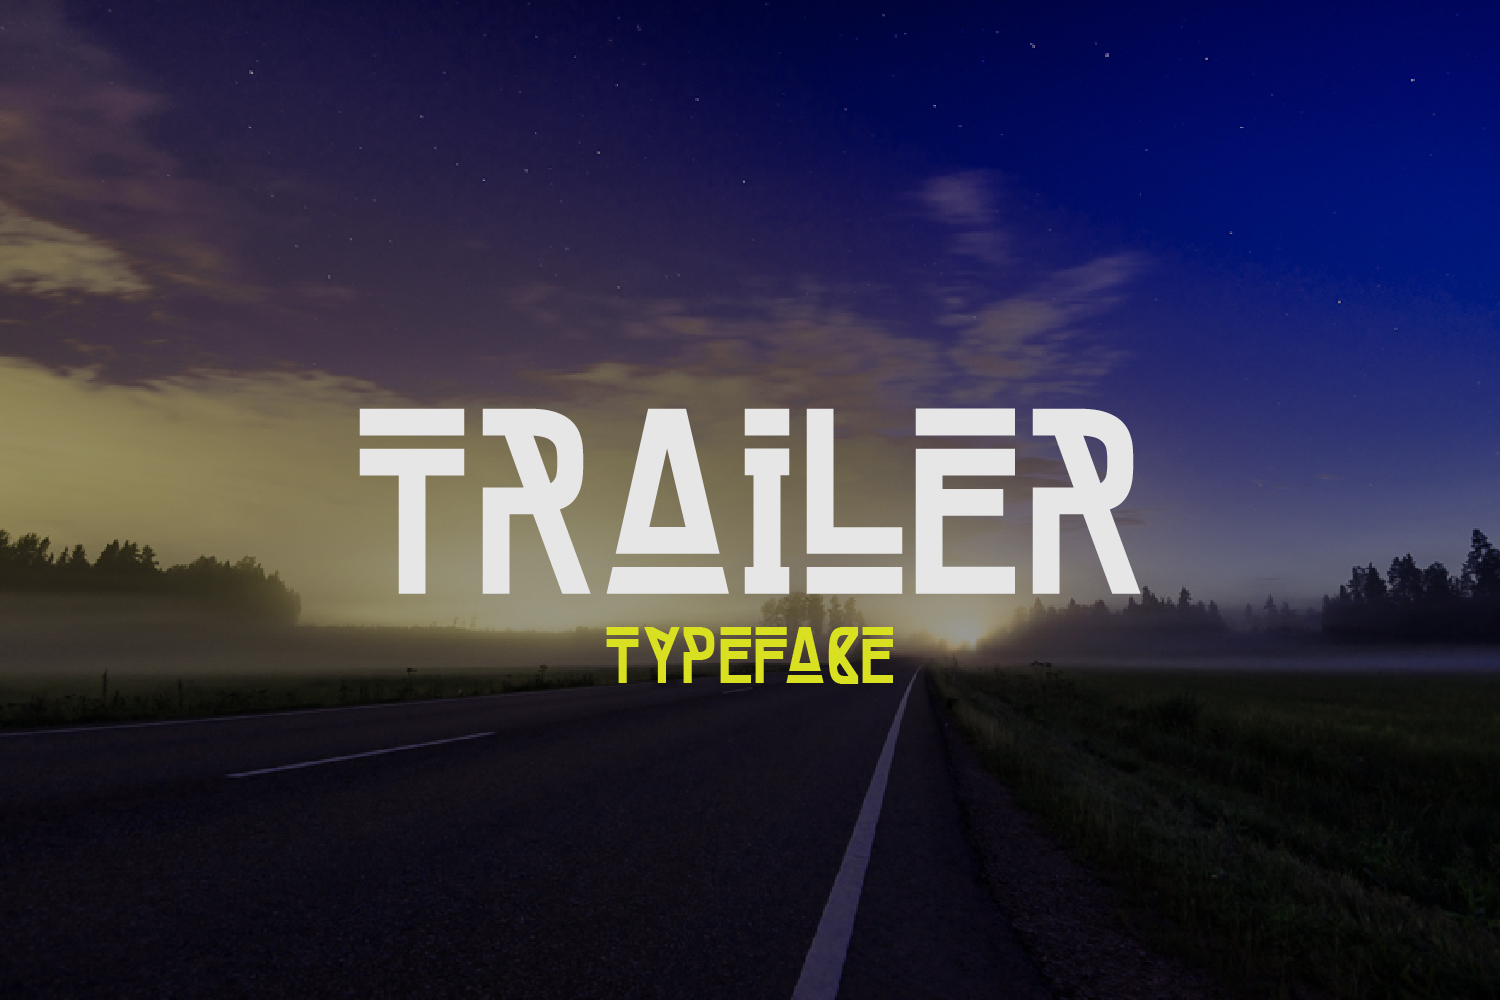 TRAILER example image 2